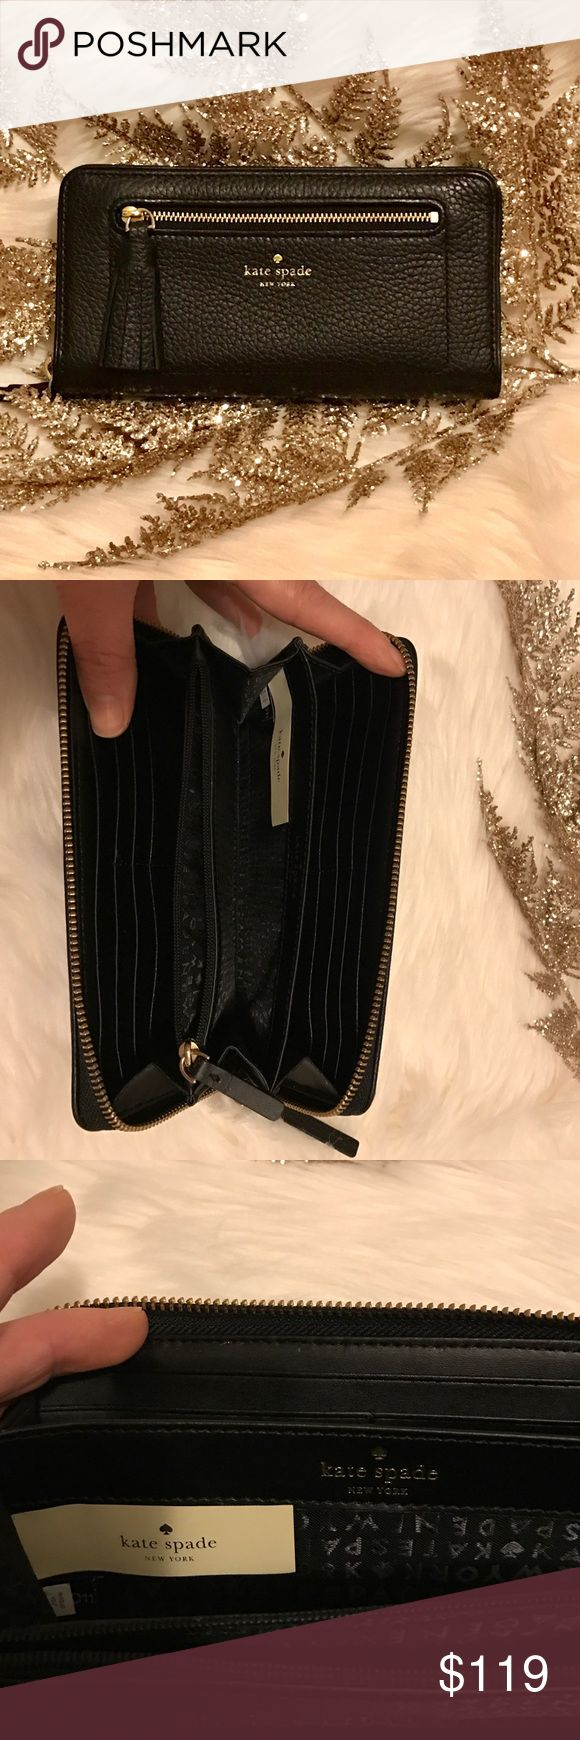 🎁🚨🤗HP 11/27🤗♠️Kate Spade tassel wallet This is a brand new with tags gorgeous wallet! It is made of full grain leather, with a fun tassel on the front pocket zipper pull. It is a full zip around to keep everything secure. 12 card slots, coin pocket, and tons of space. I can fit my iPhone 7 plus inside and zip it up fully. 🎉🎁🤗Host Pick for Simply Chic Party 11/27!🤗🎁🎉 kate spade Bags Wallets